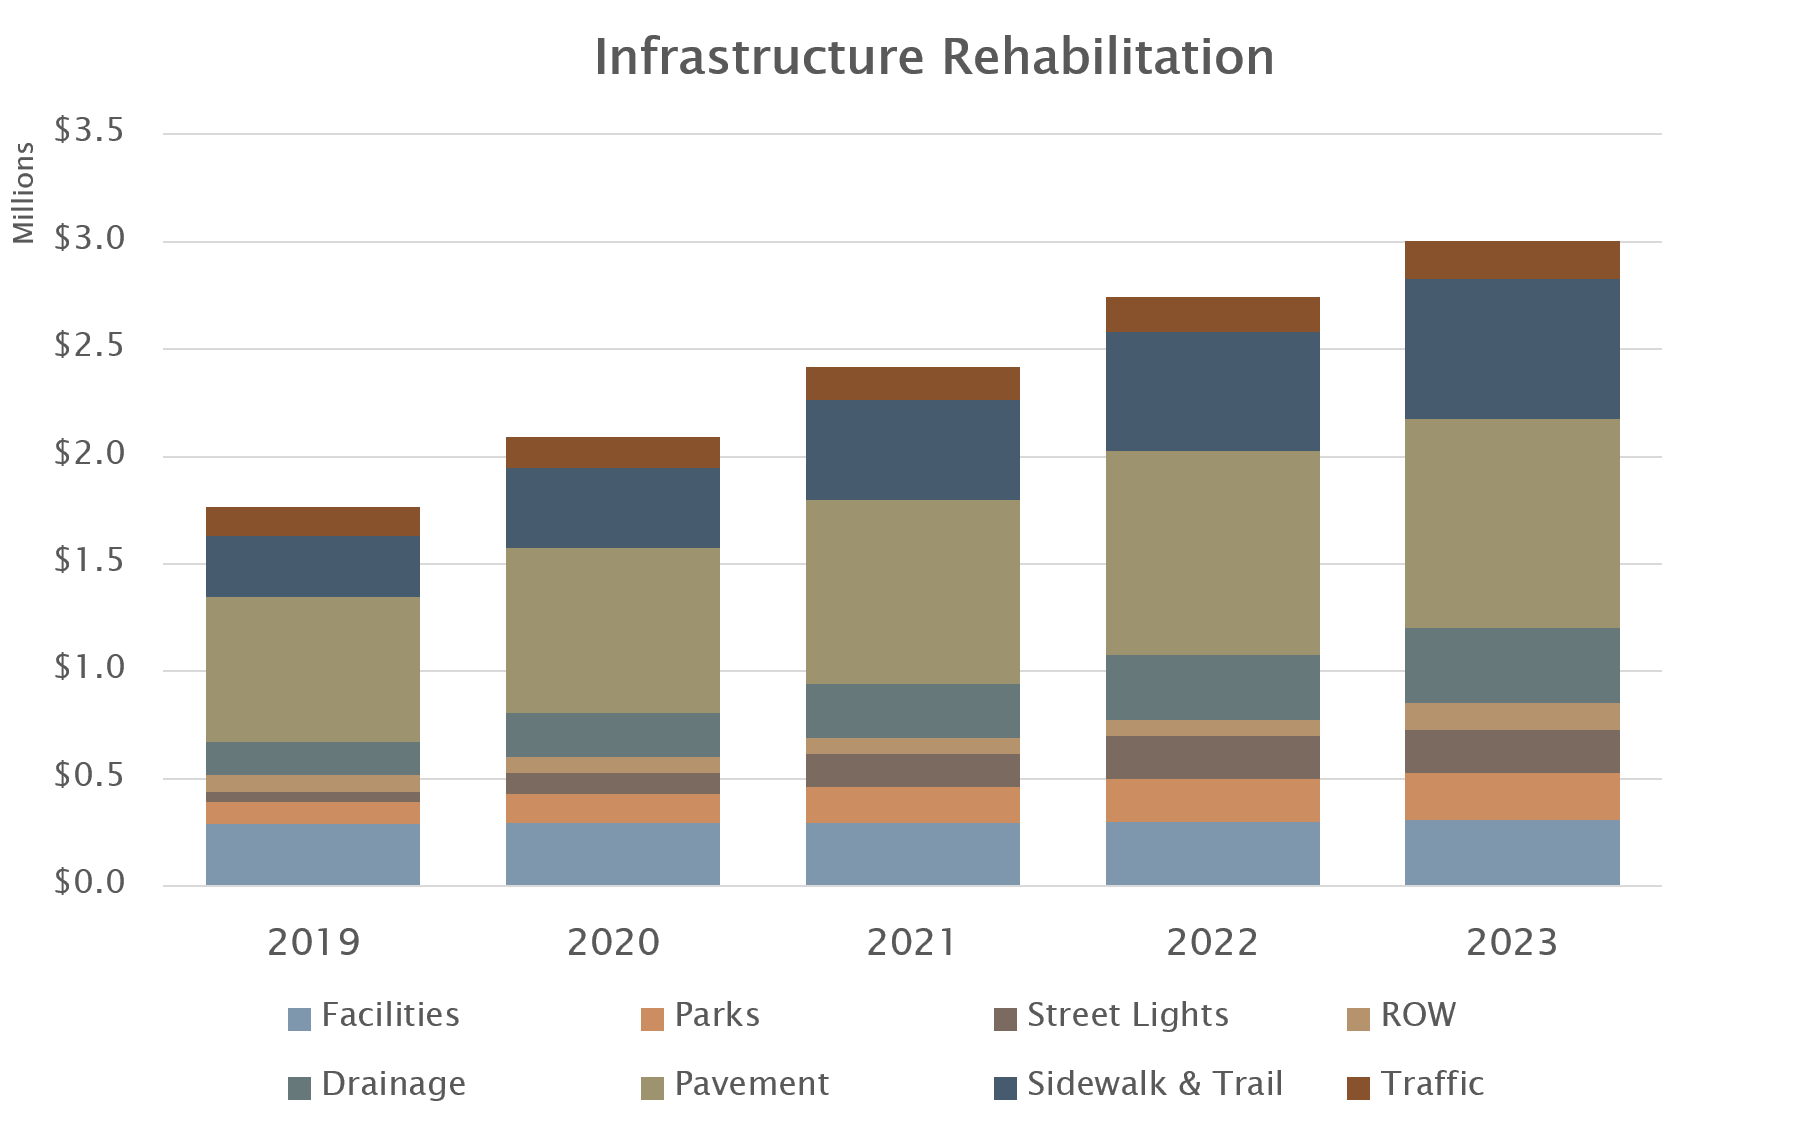 Infrastructure Rehabilitation Plan